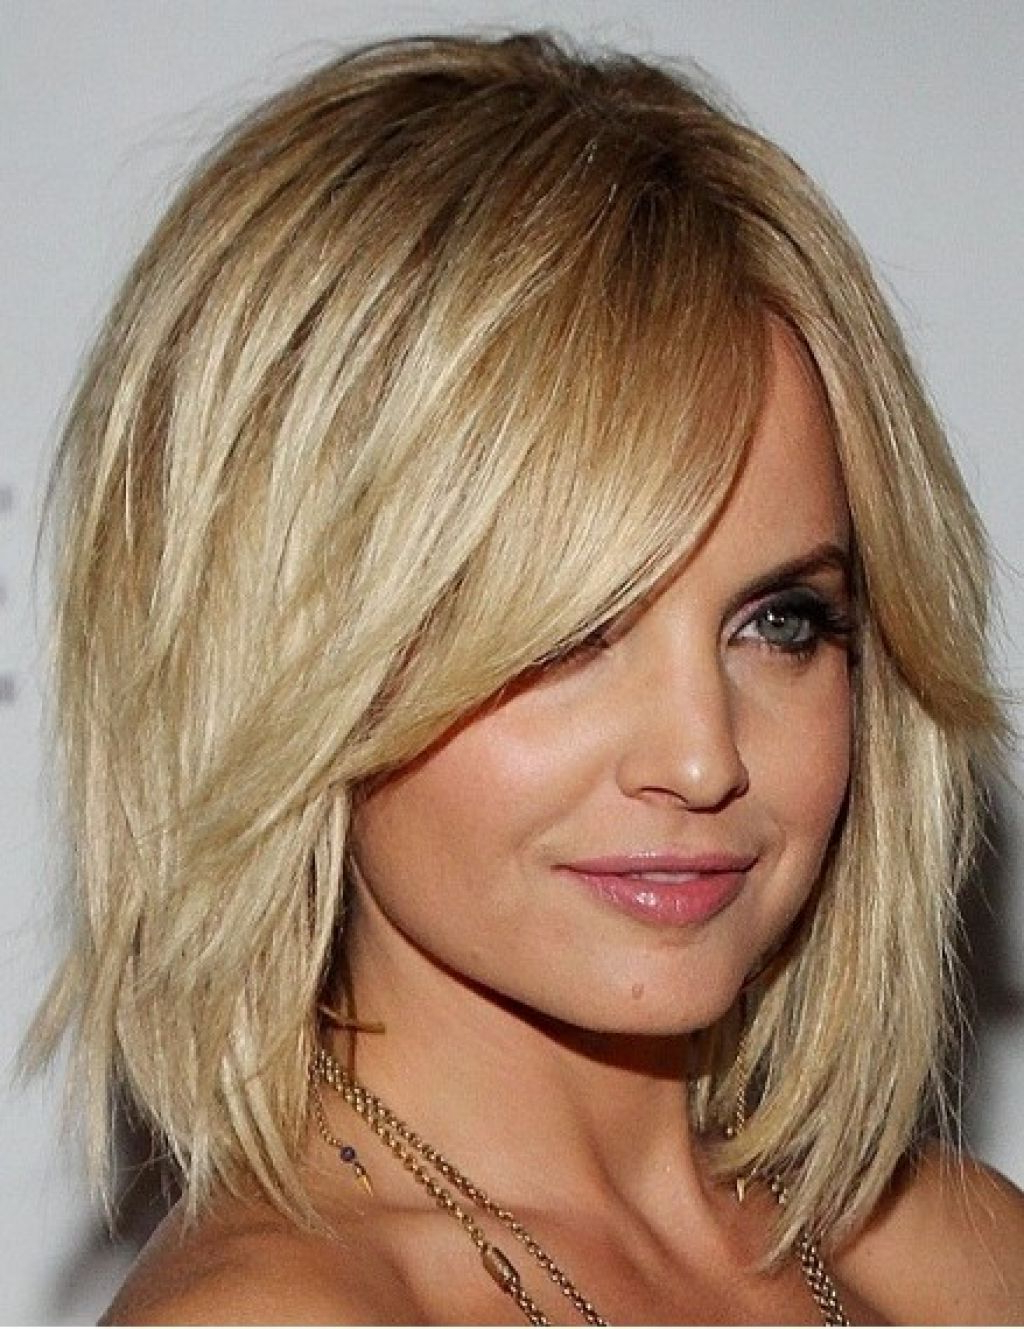 Choppy Bob Style For Mid Length Hair On Women | Everlasting In Short To Medium Feminine Layered Haircuts (View 12 of 20)